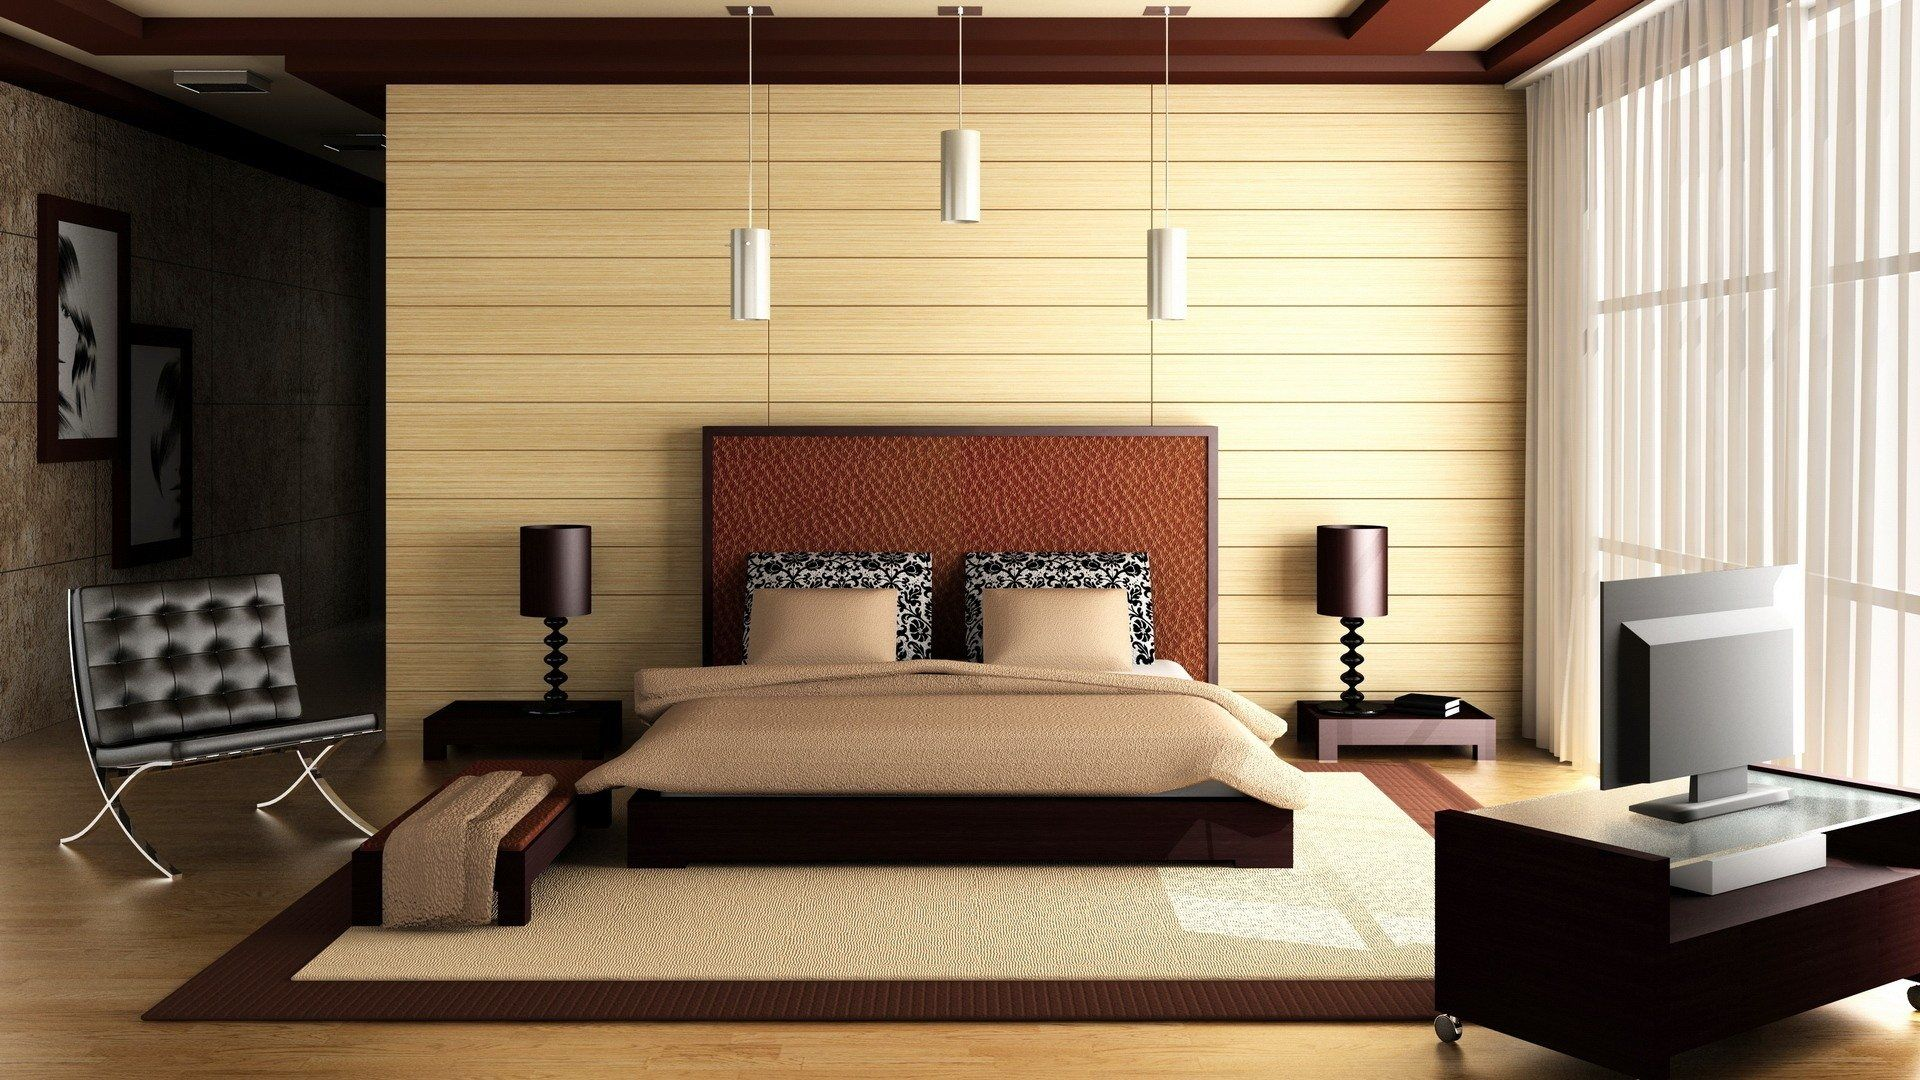 Trending The Latest Interior Design Magazine Zaila Us Decorating Master Bedroom Ideas  By latest interiors designs bedroom